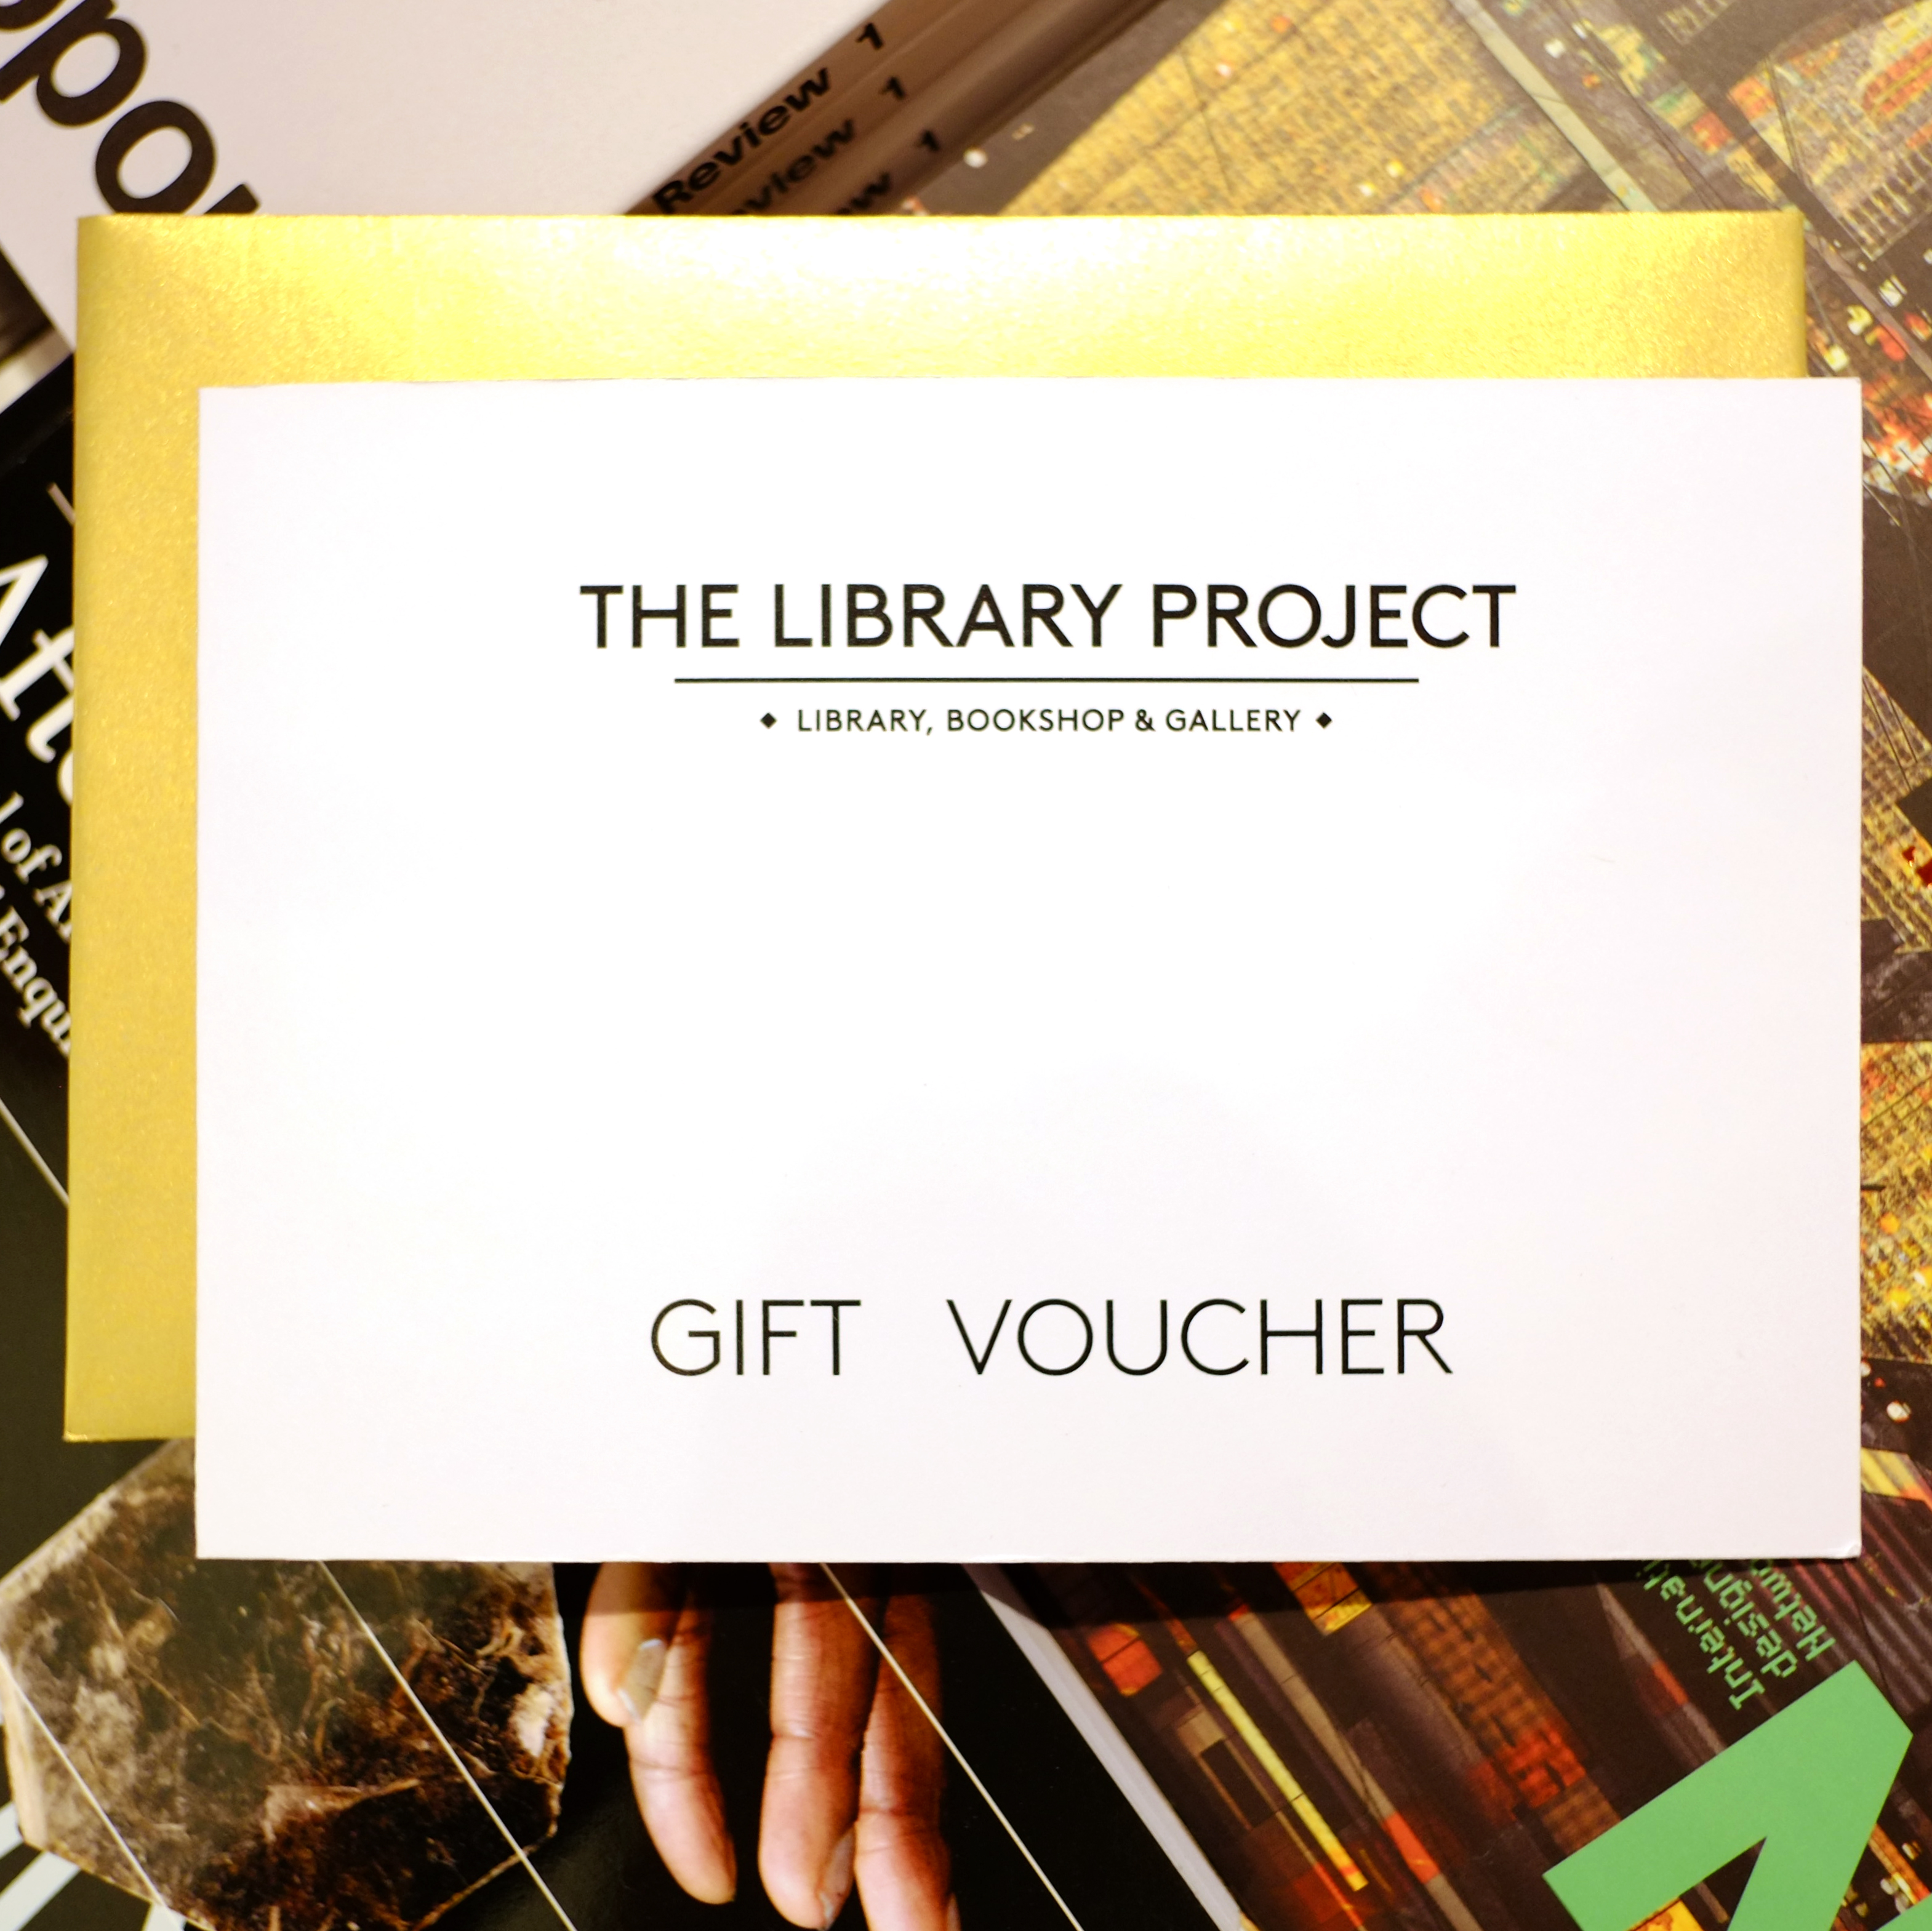 The Library Project Gift Voucher